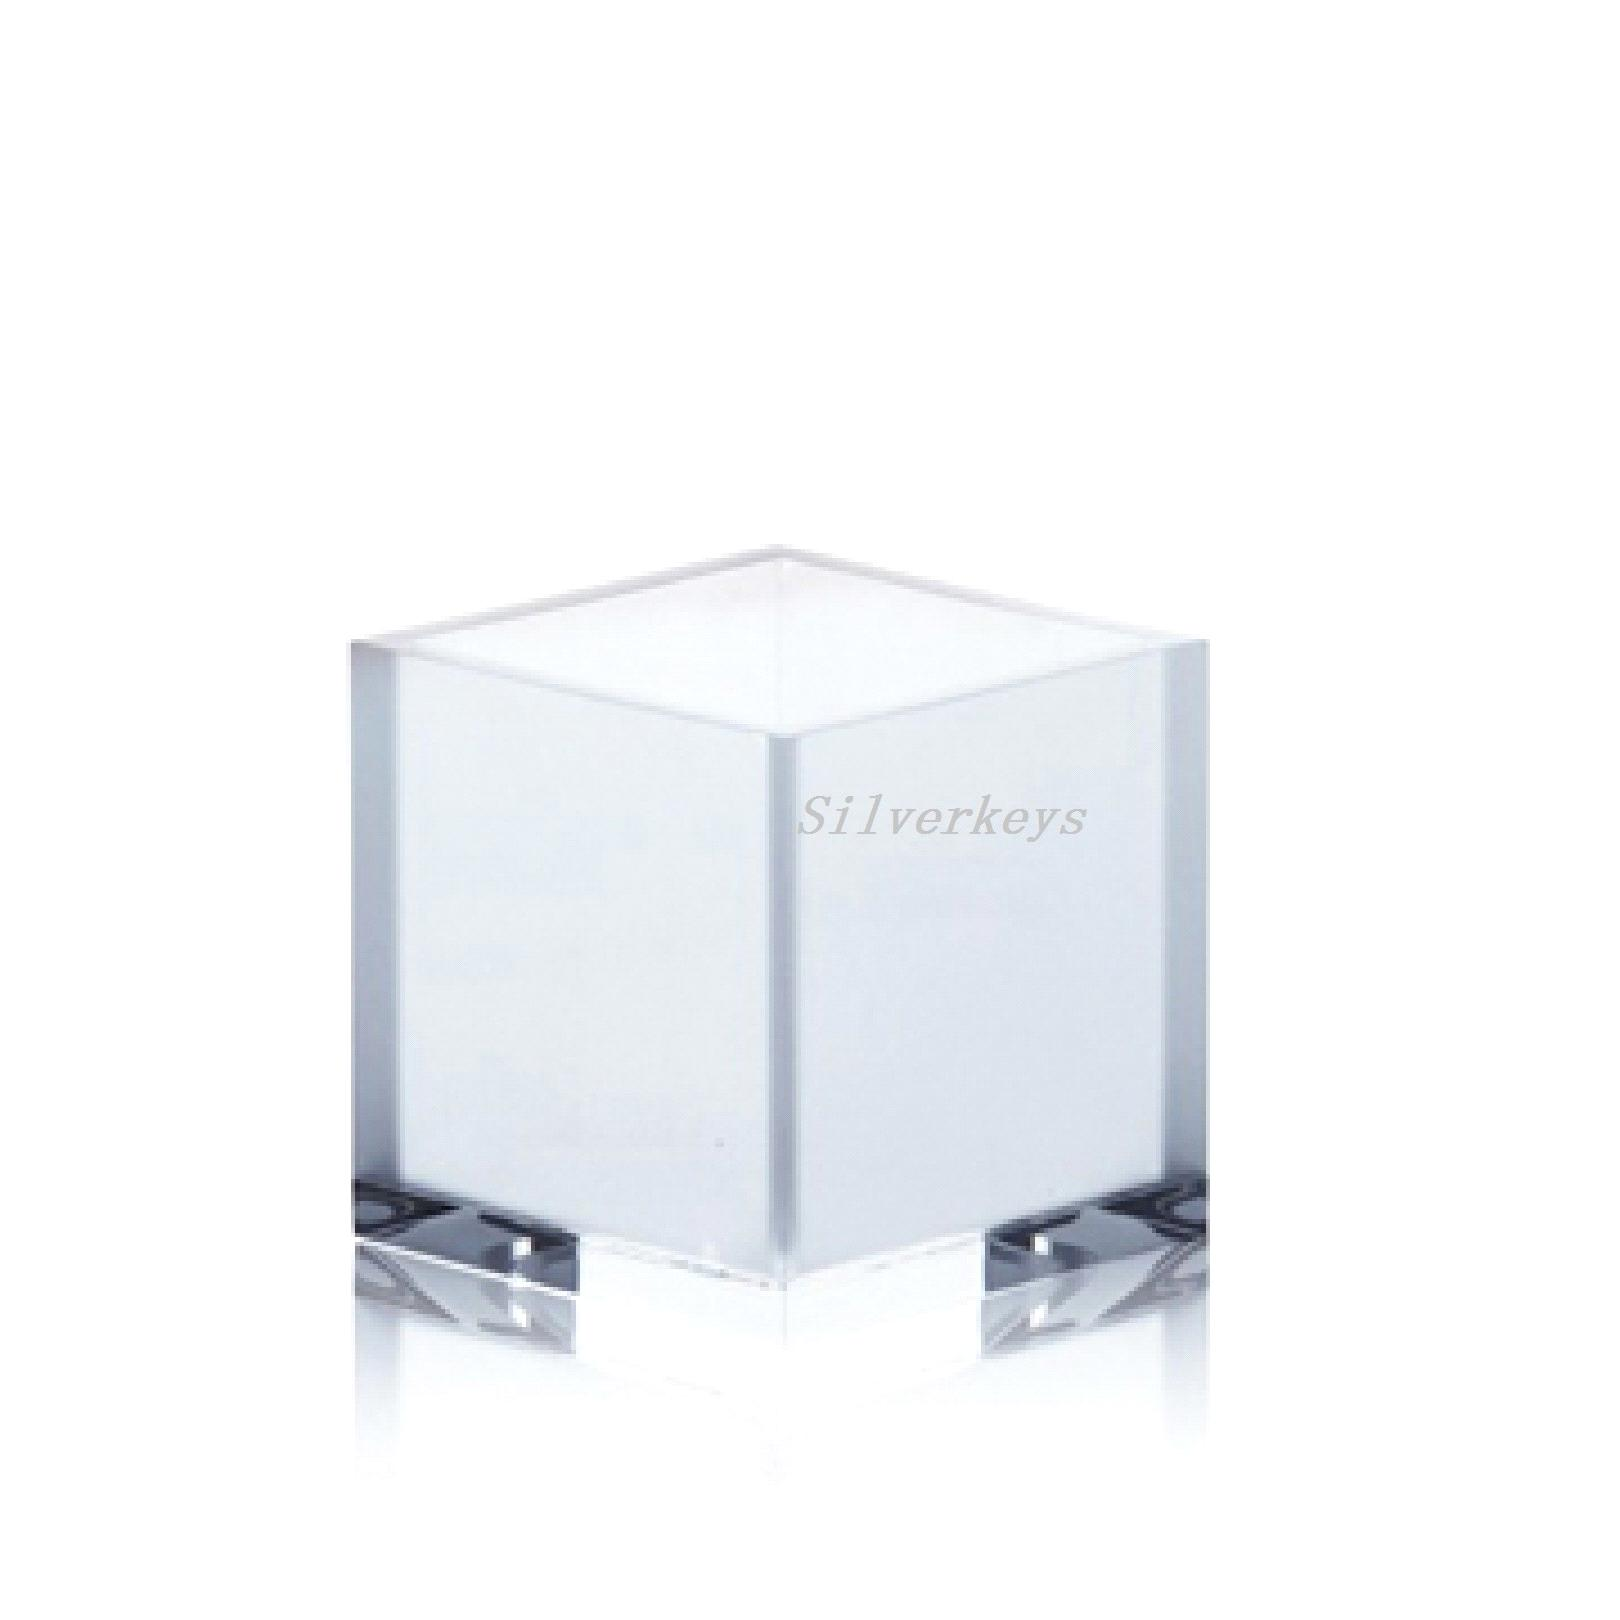 Frosting acrylic vase purchasing souring agent ecvv frosting acrylic vase purchasing souring agent ecvv purchasing service platform reviewsmspy